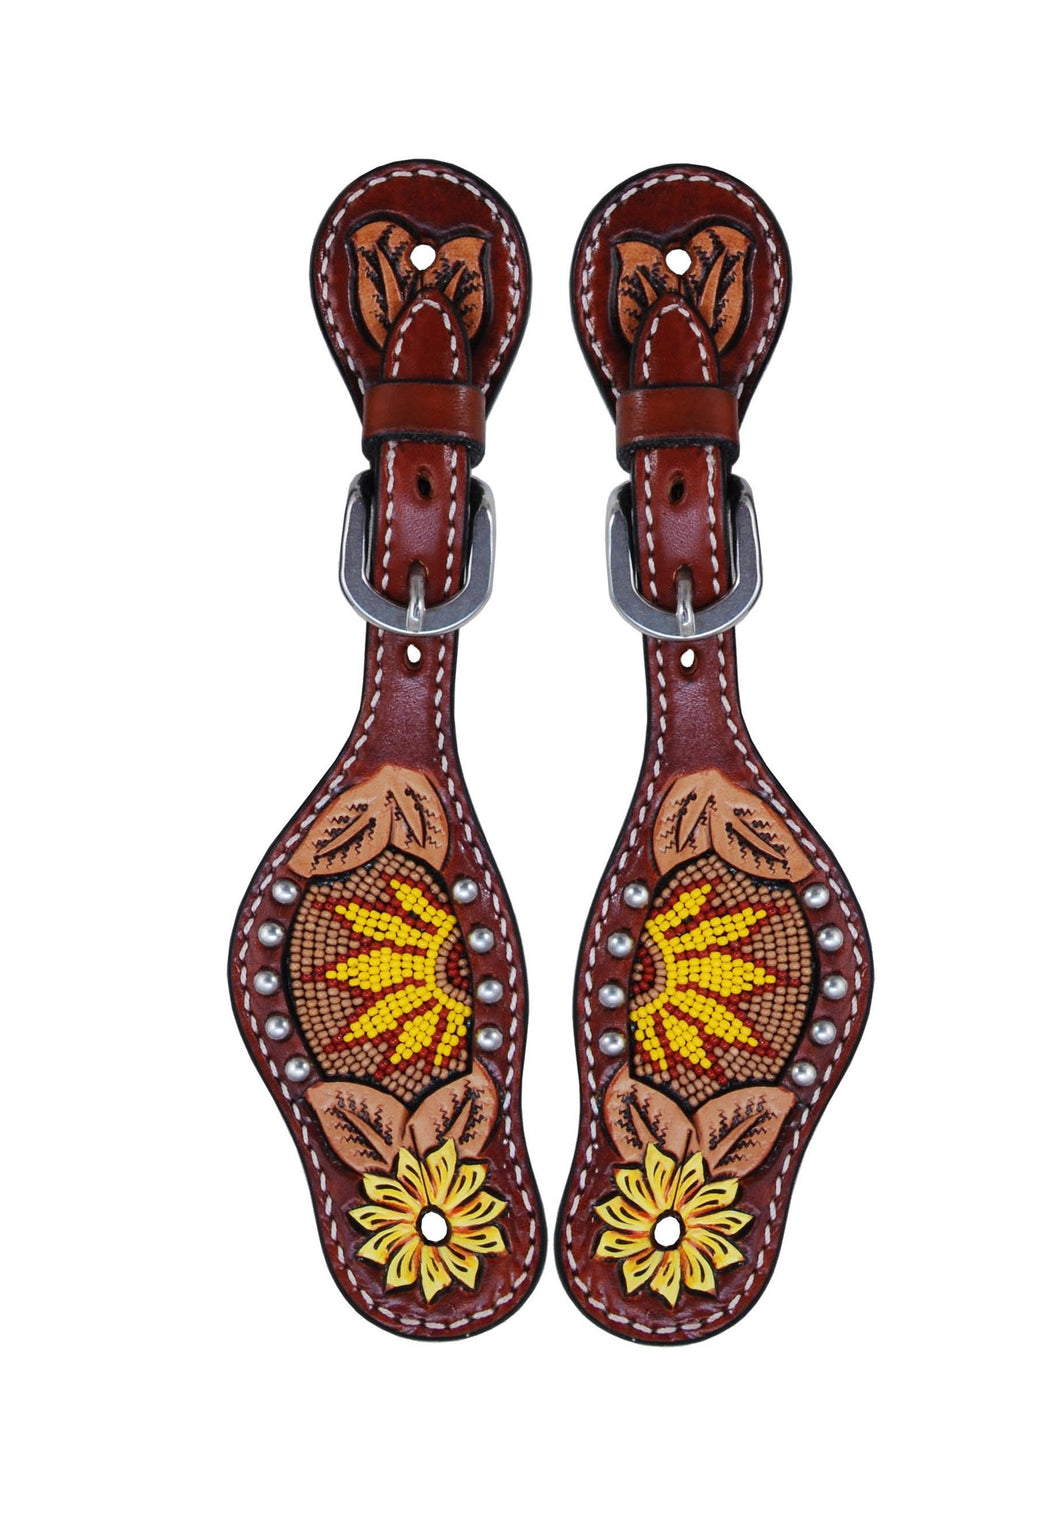 Rafter T Kids Spur Strap - Beaded Sunflower